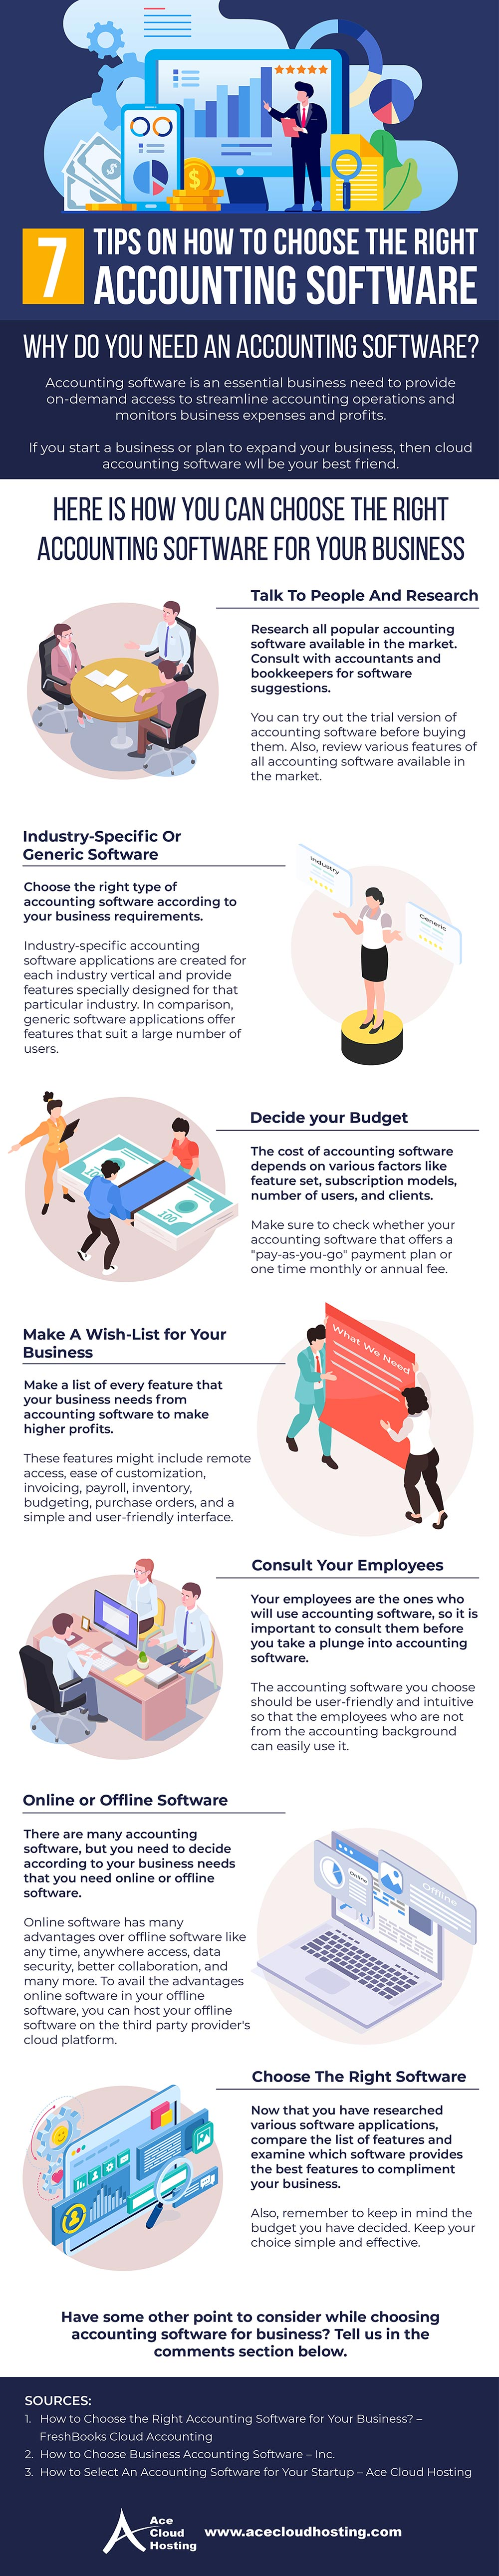 [Infographic] 7 Tips on How to Choose the Right Accounting Software